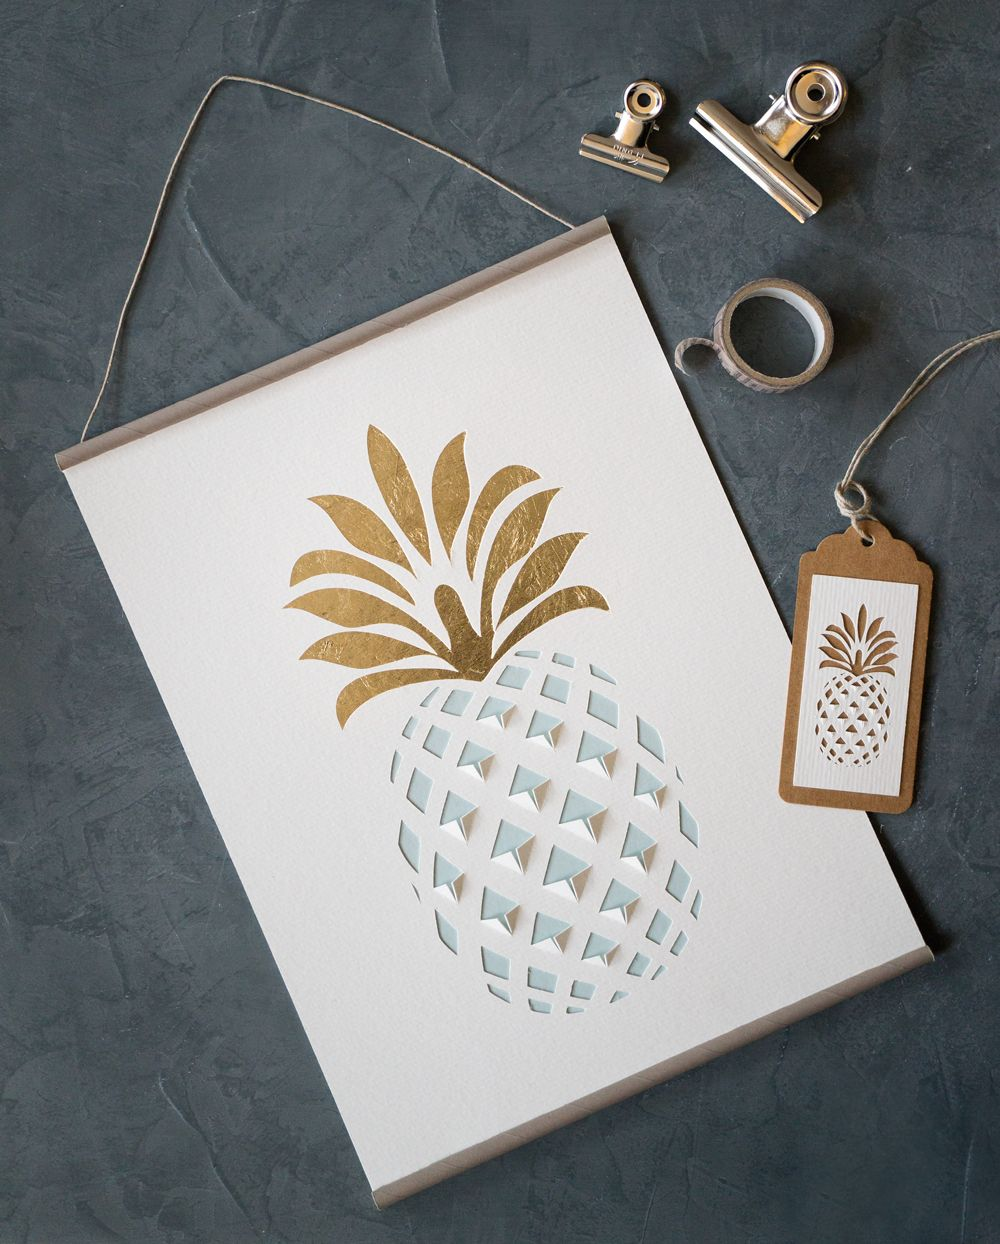 Ananas forever origami kirigami and craft